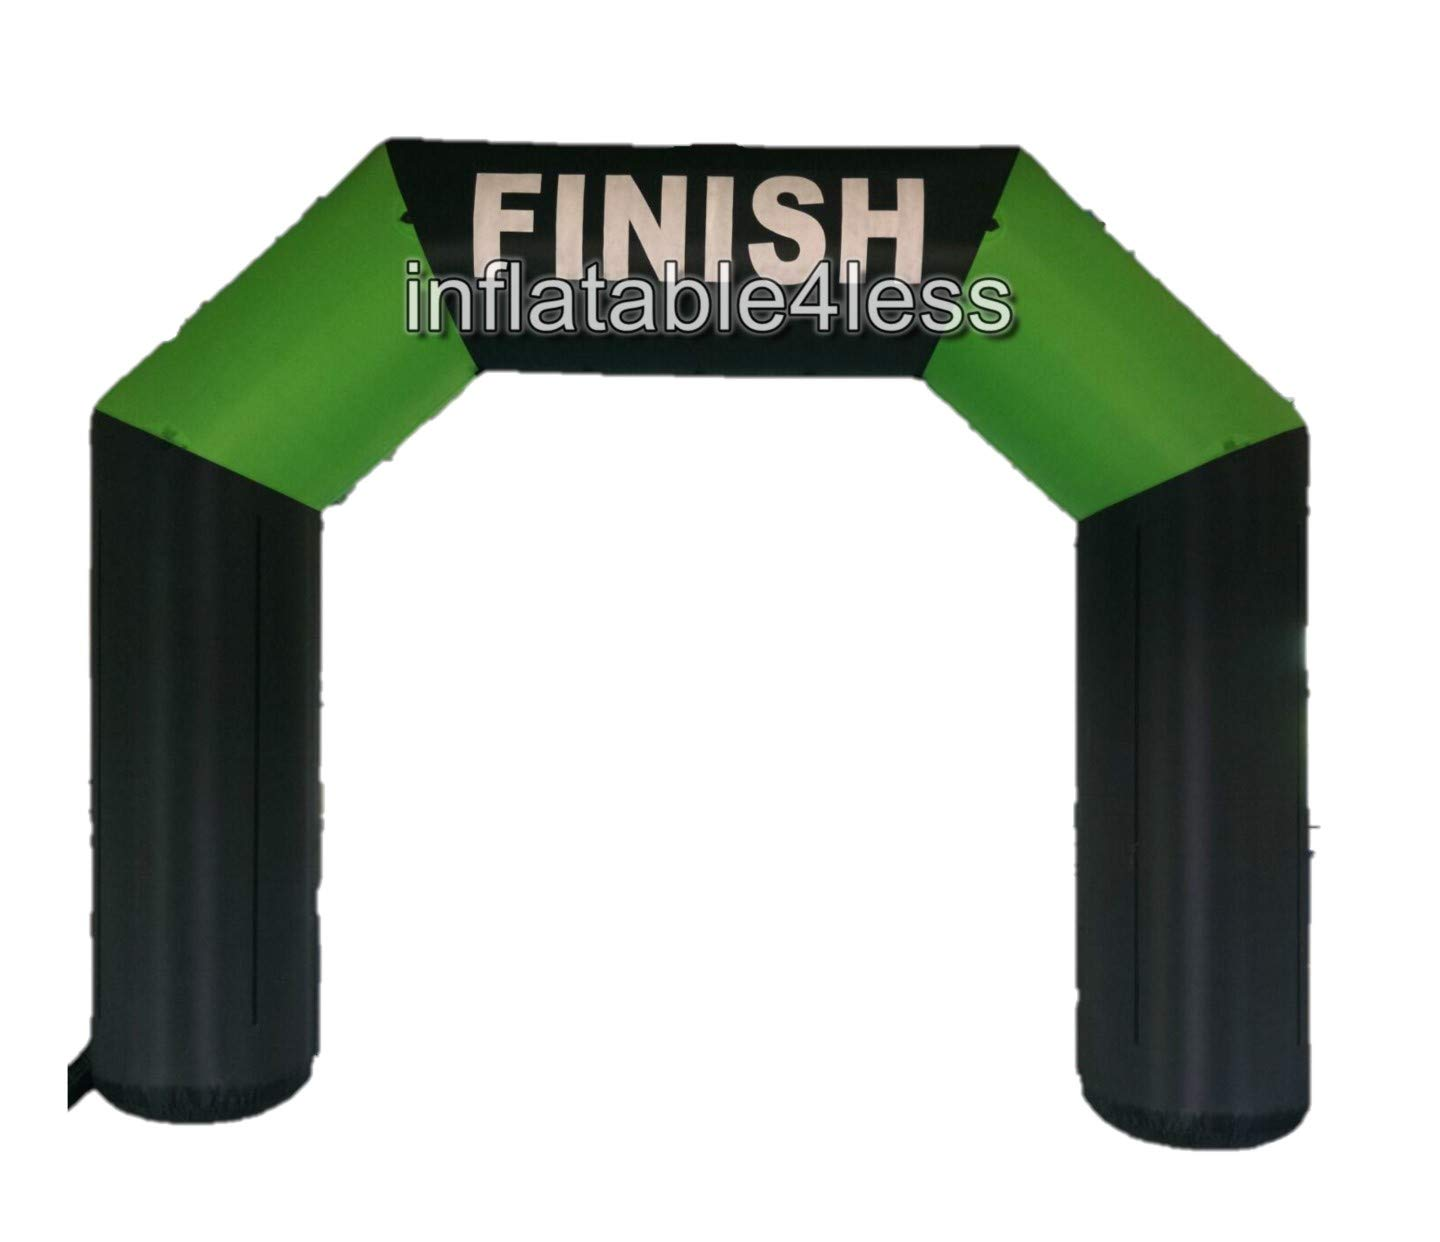 inflatable4less 16ft Two-Tone Inflatable Arch Archway w/Fan Made-to-Order (Blackgreen)